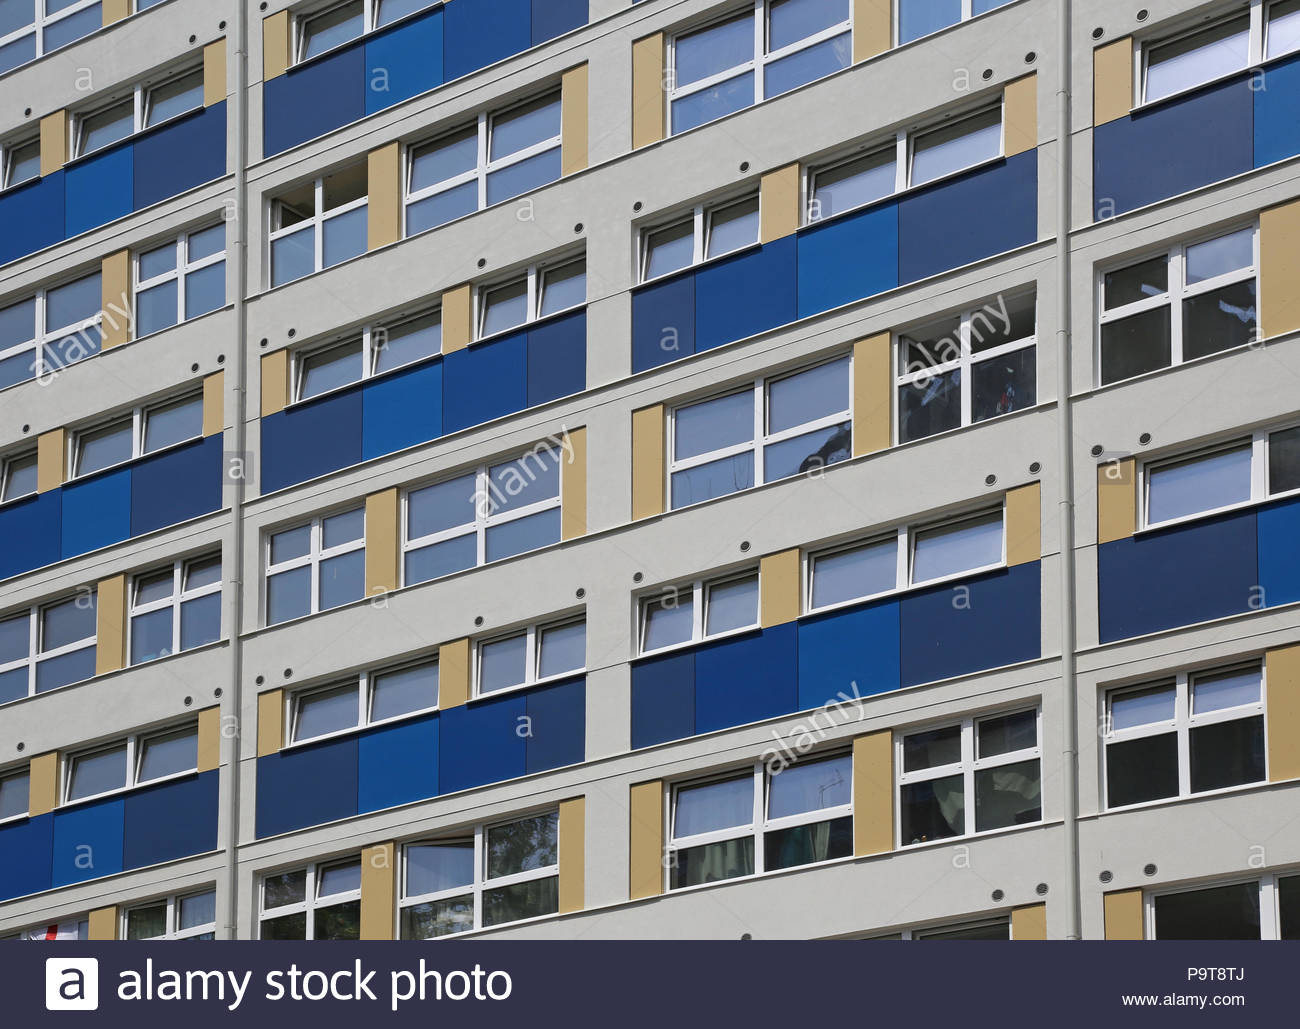 Wilmcote House, Portsmouth, UK. 1968-built social housing tower blocks recently refurbished to EnerPHit standard reducing energy use by 90% - Stock Image